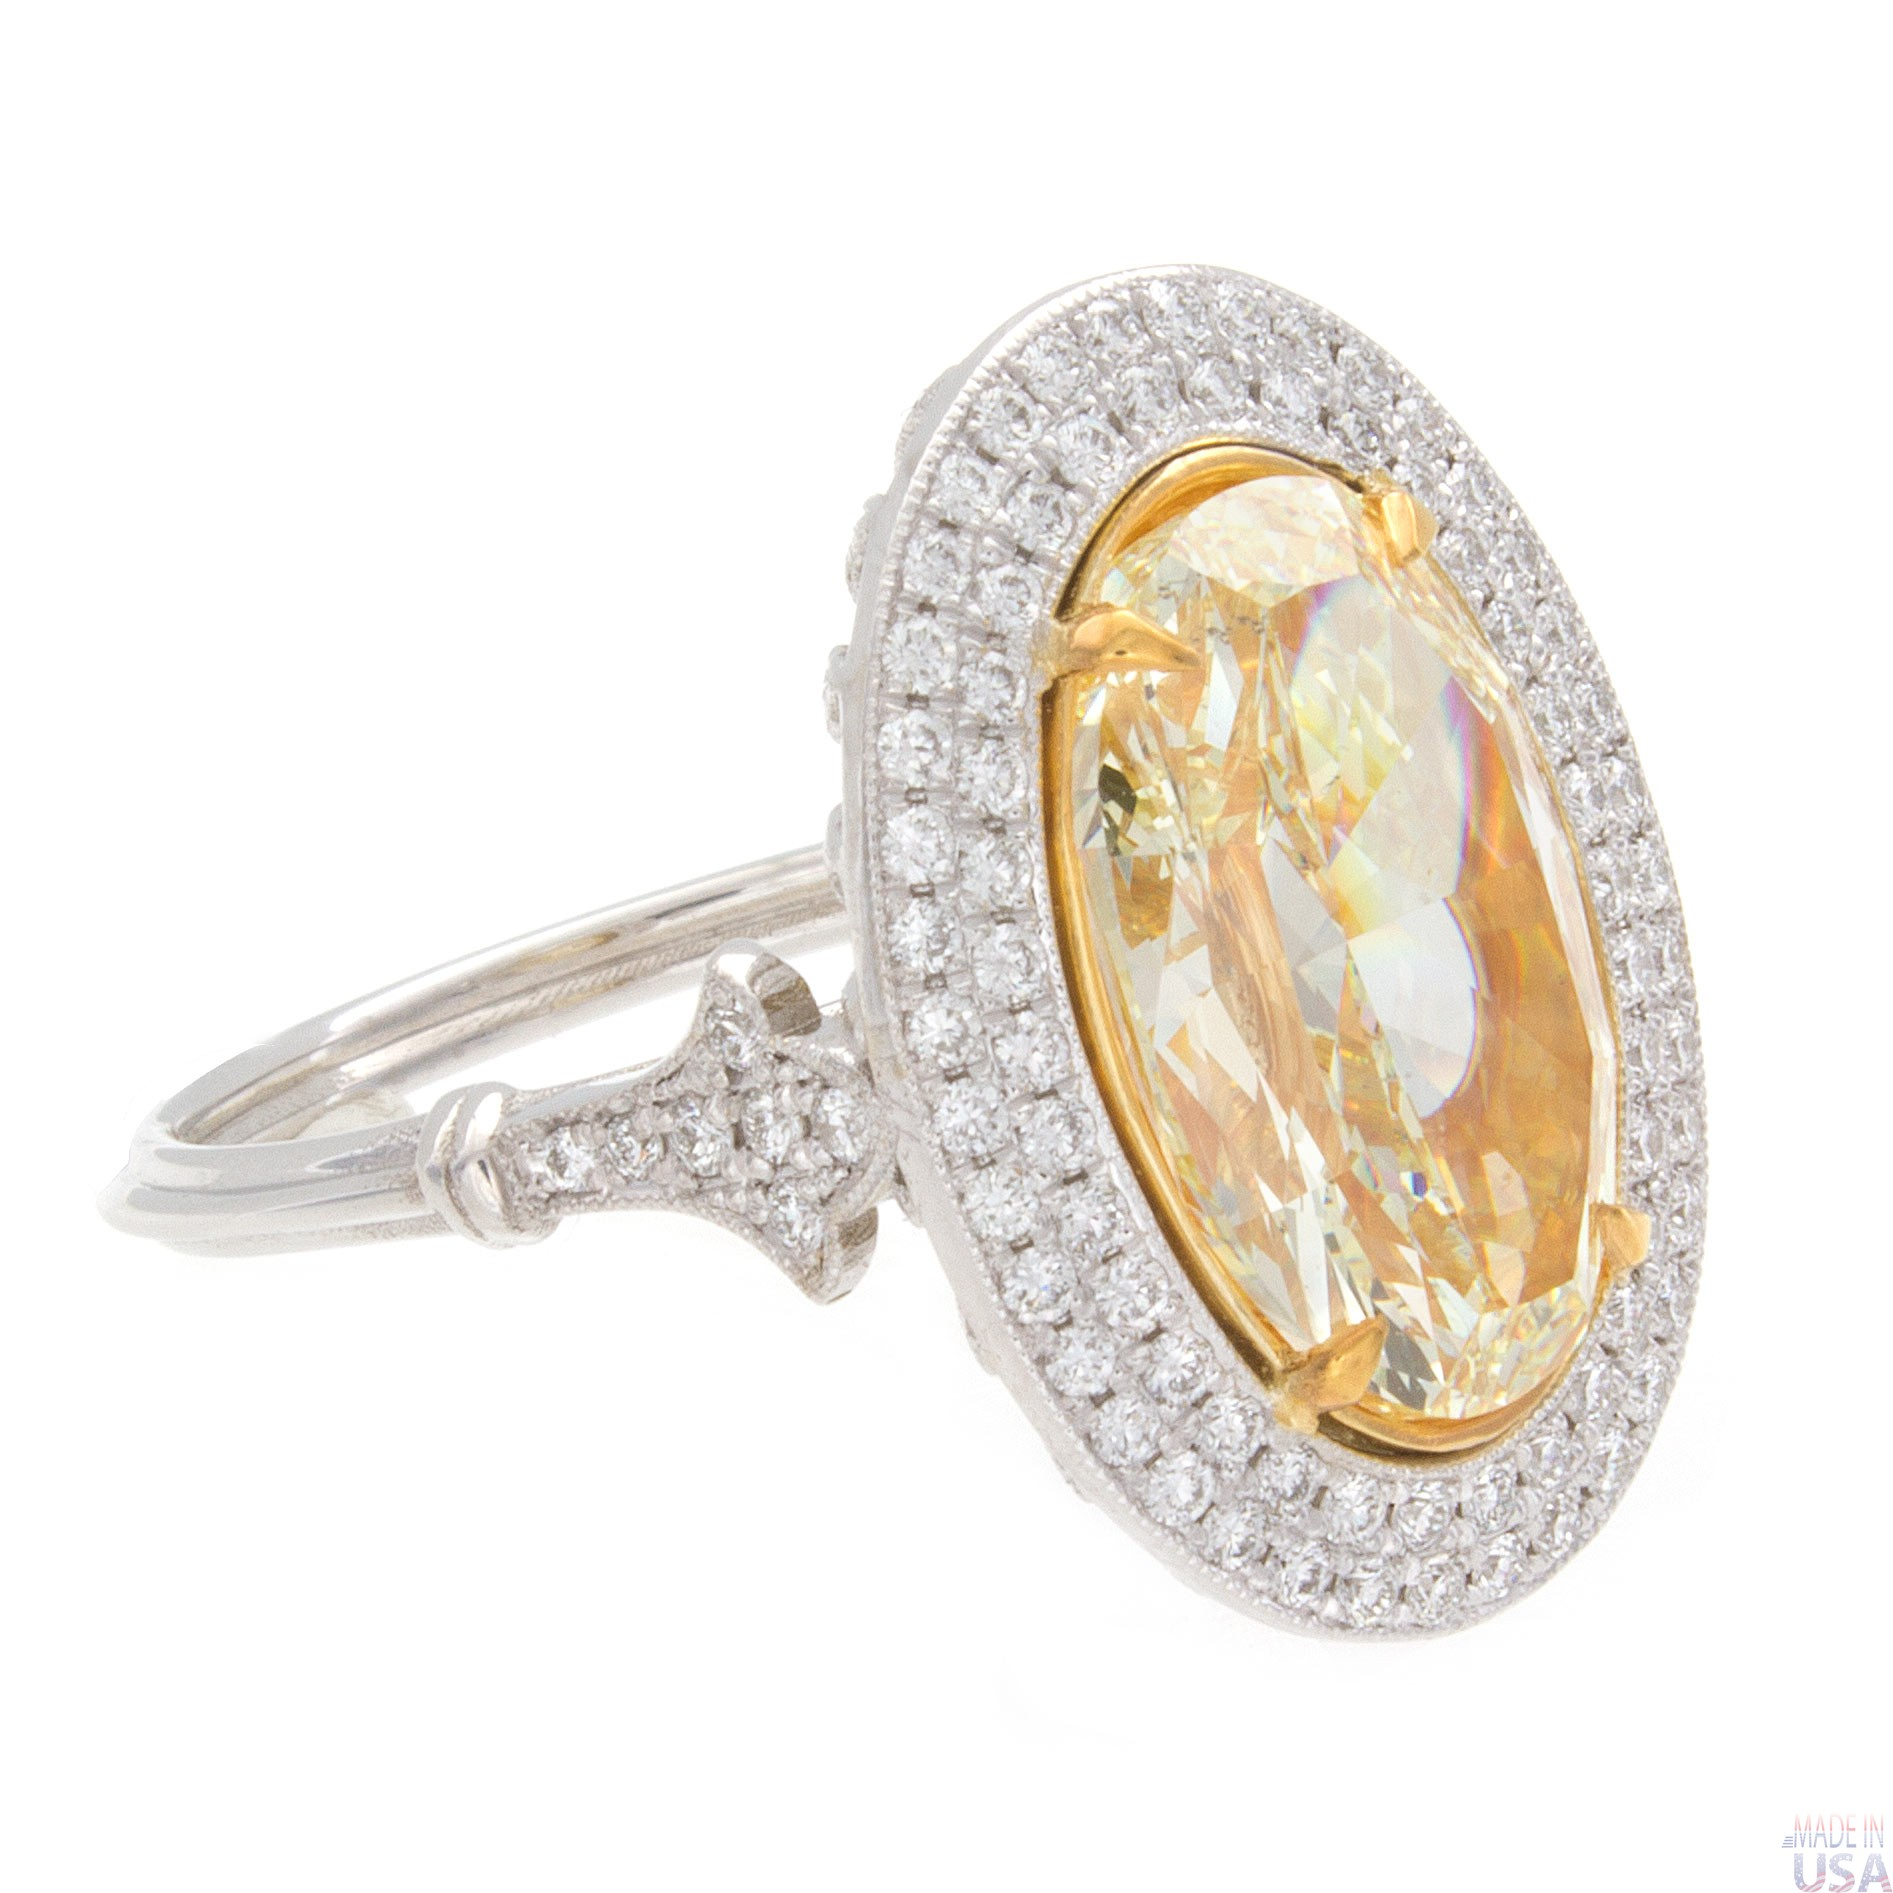 4 50ct oval cut fancy yellow halo pav 233 engagement ring